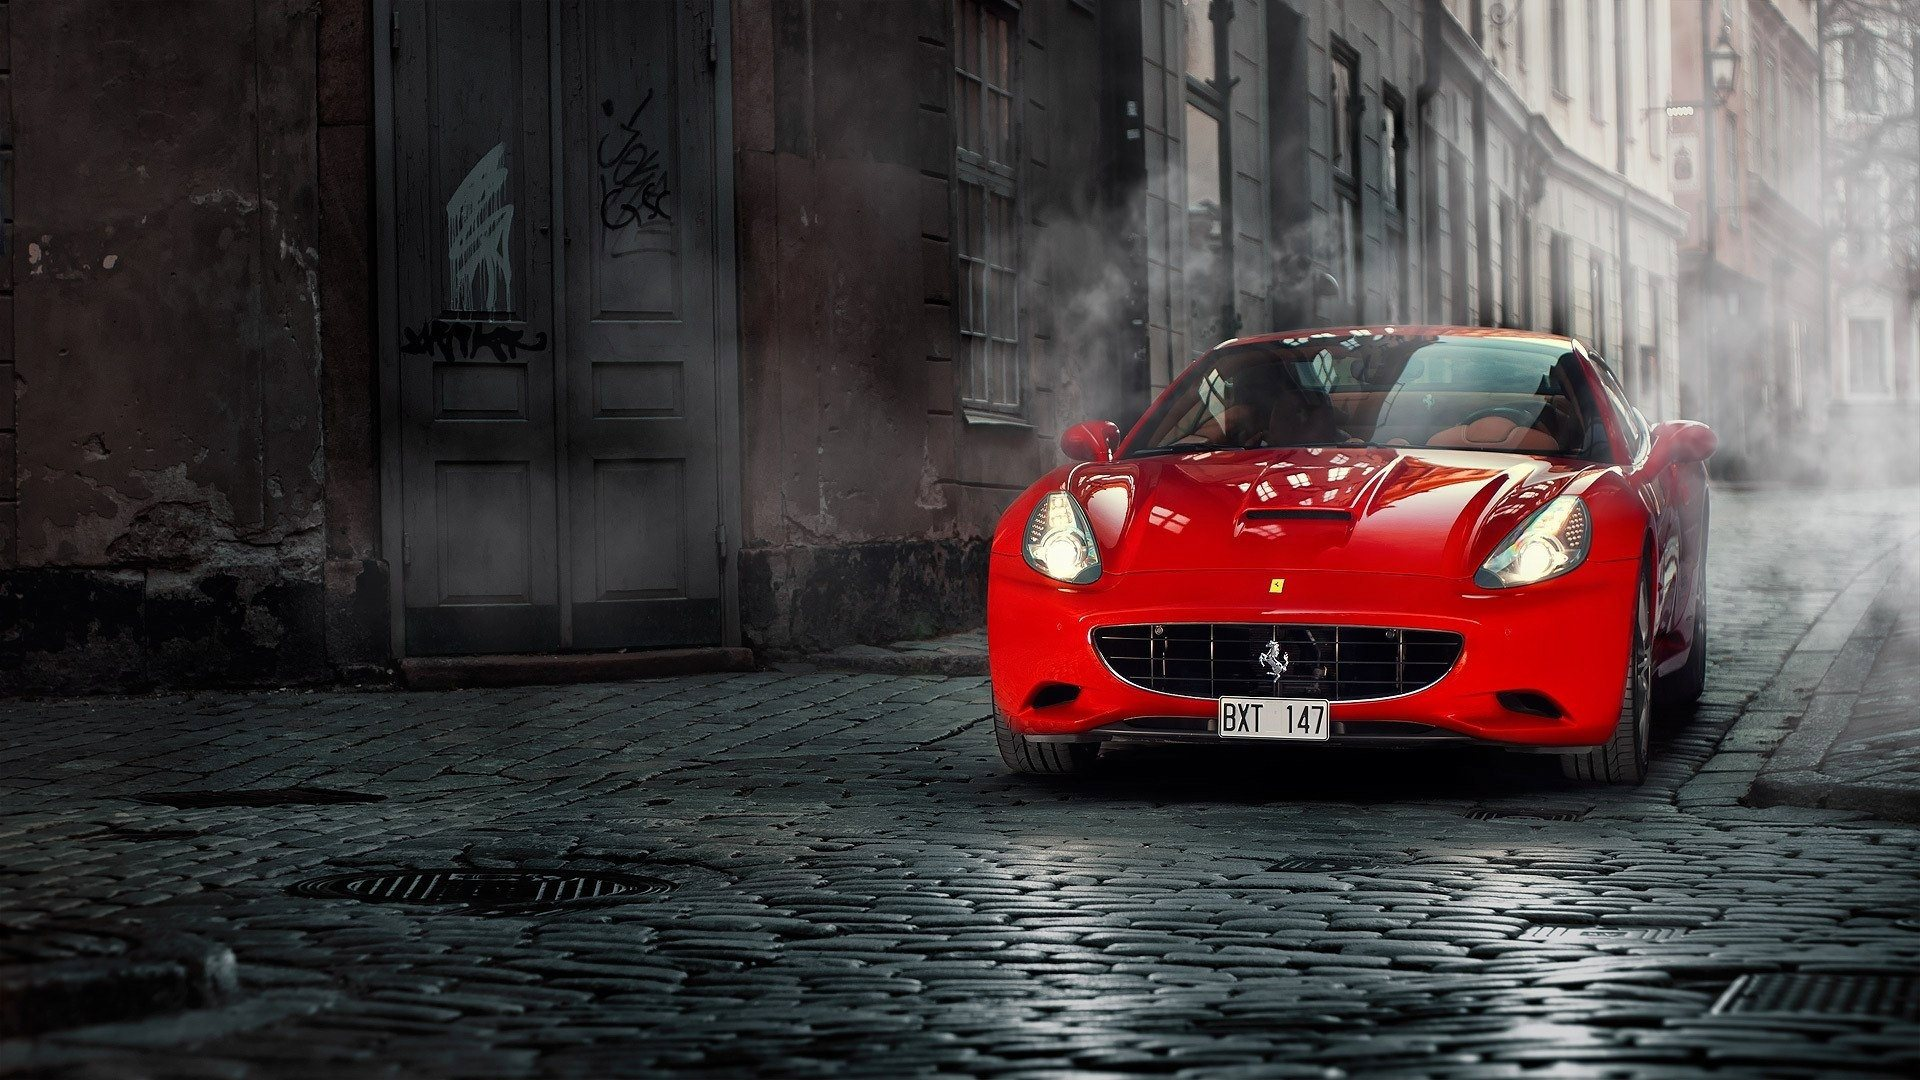 red ferrari wallpaper hd - photo #34